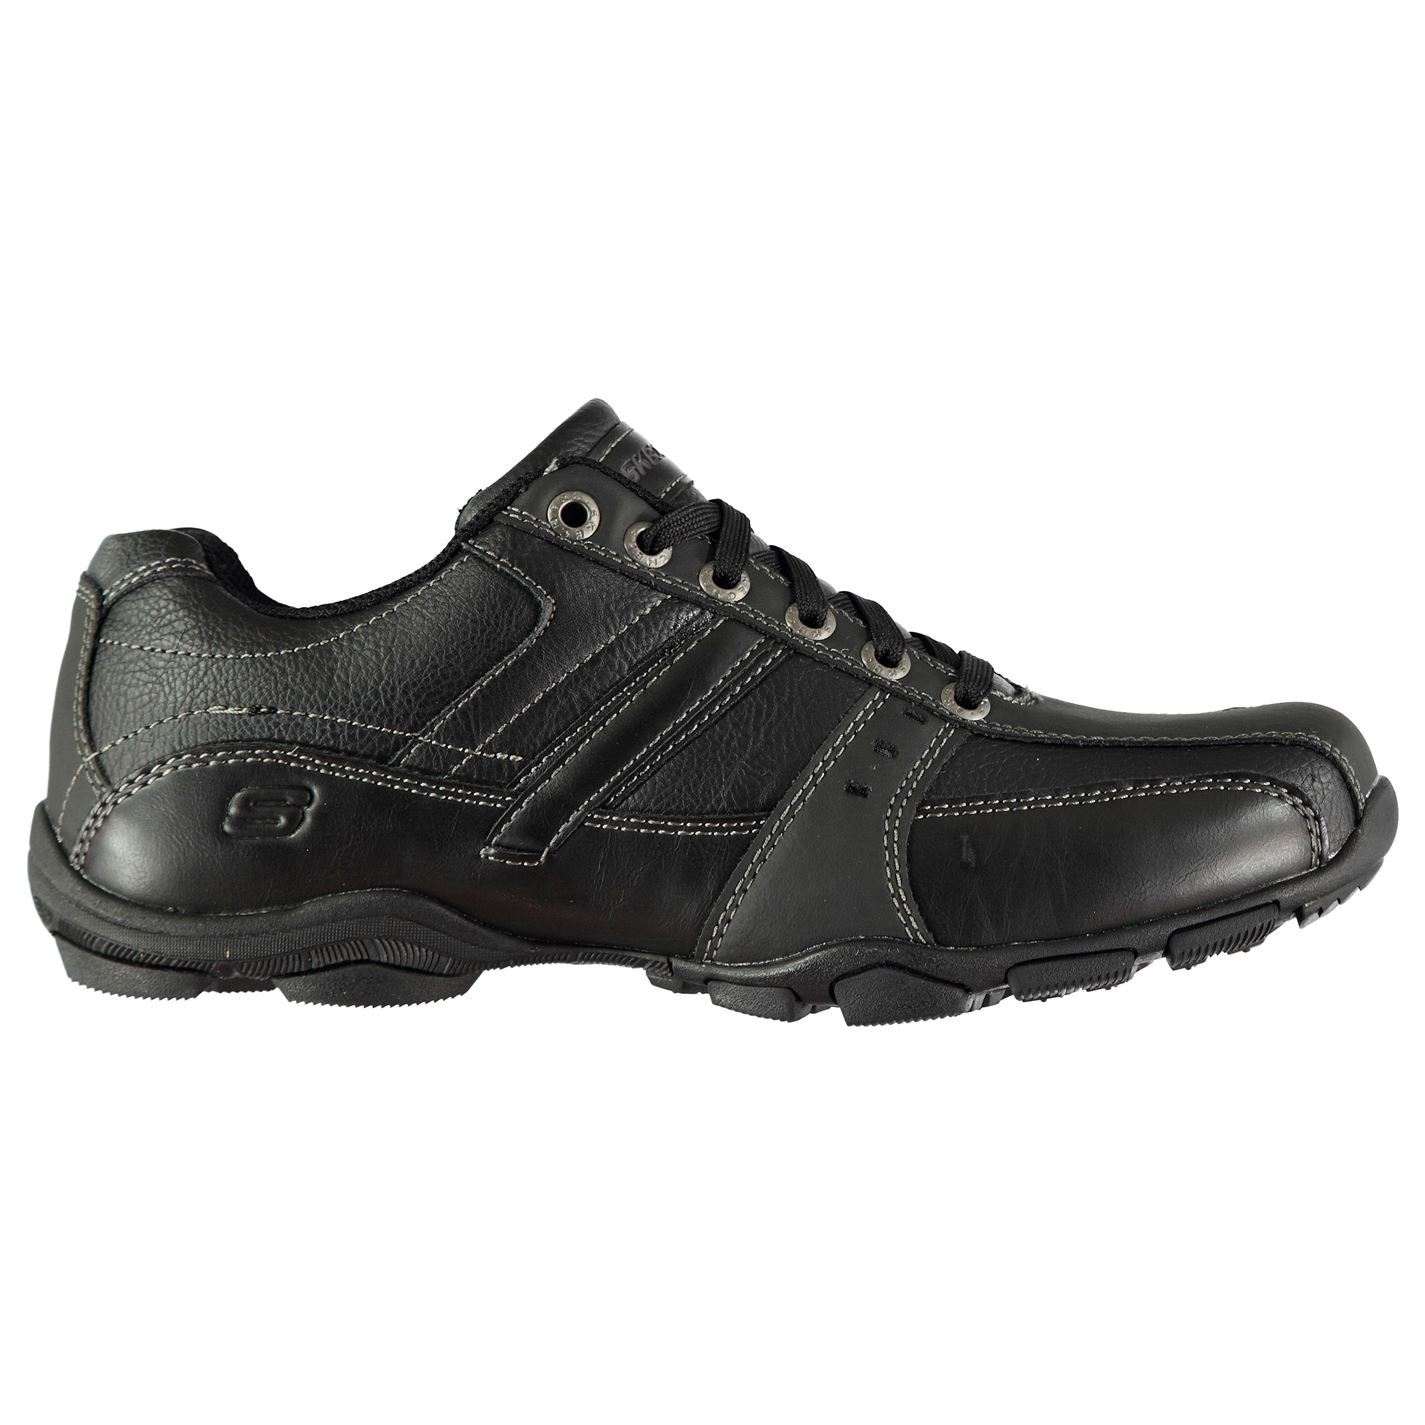 Skechers Mens Lace Casual Shoes Up Padded Ankle Collar Memory Foam